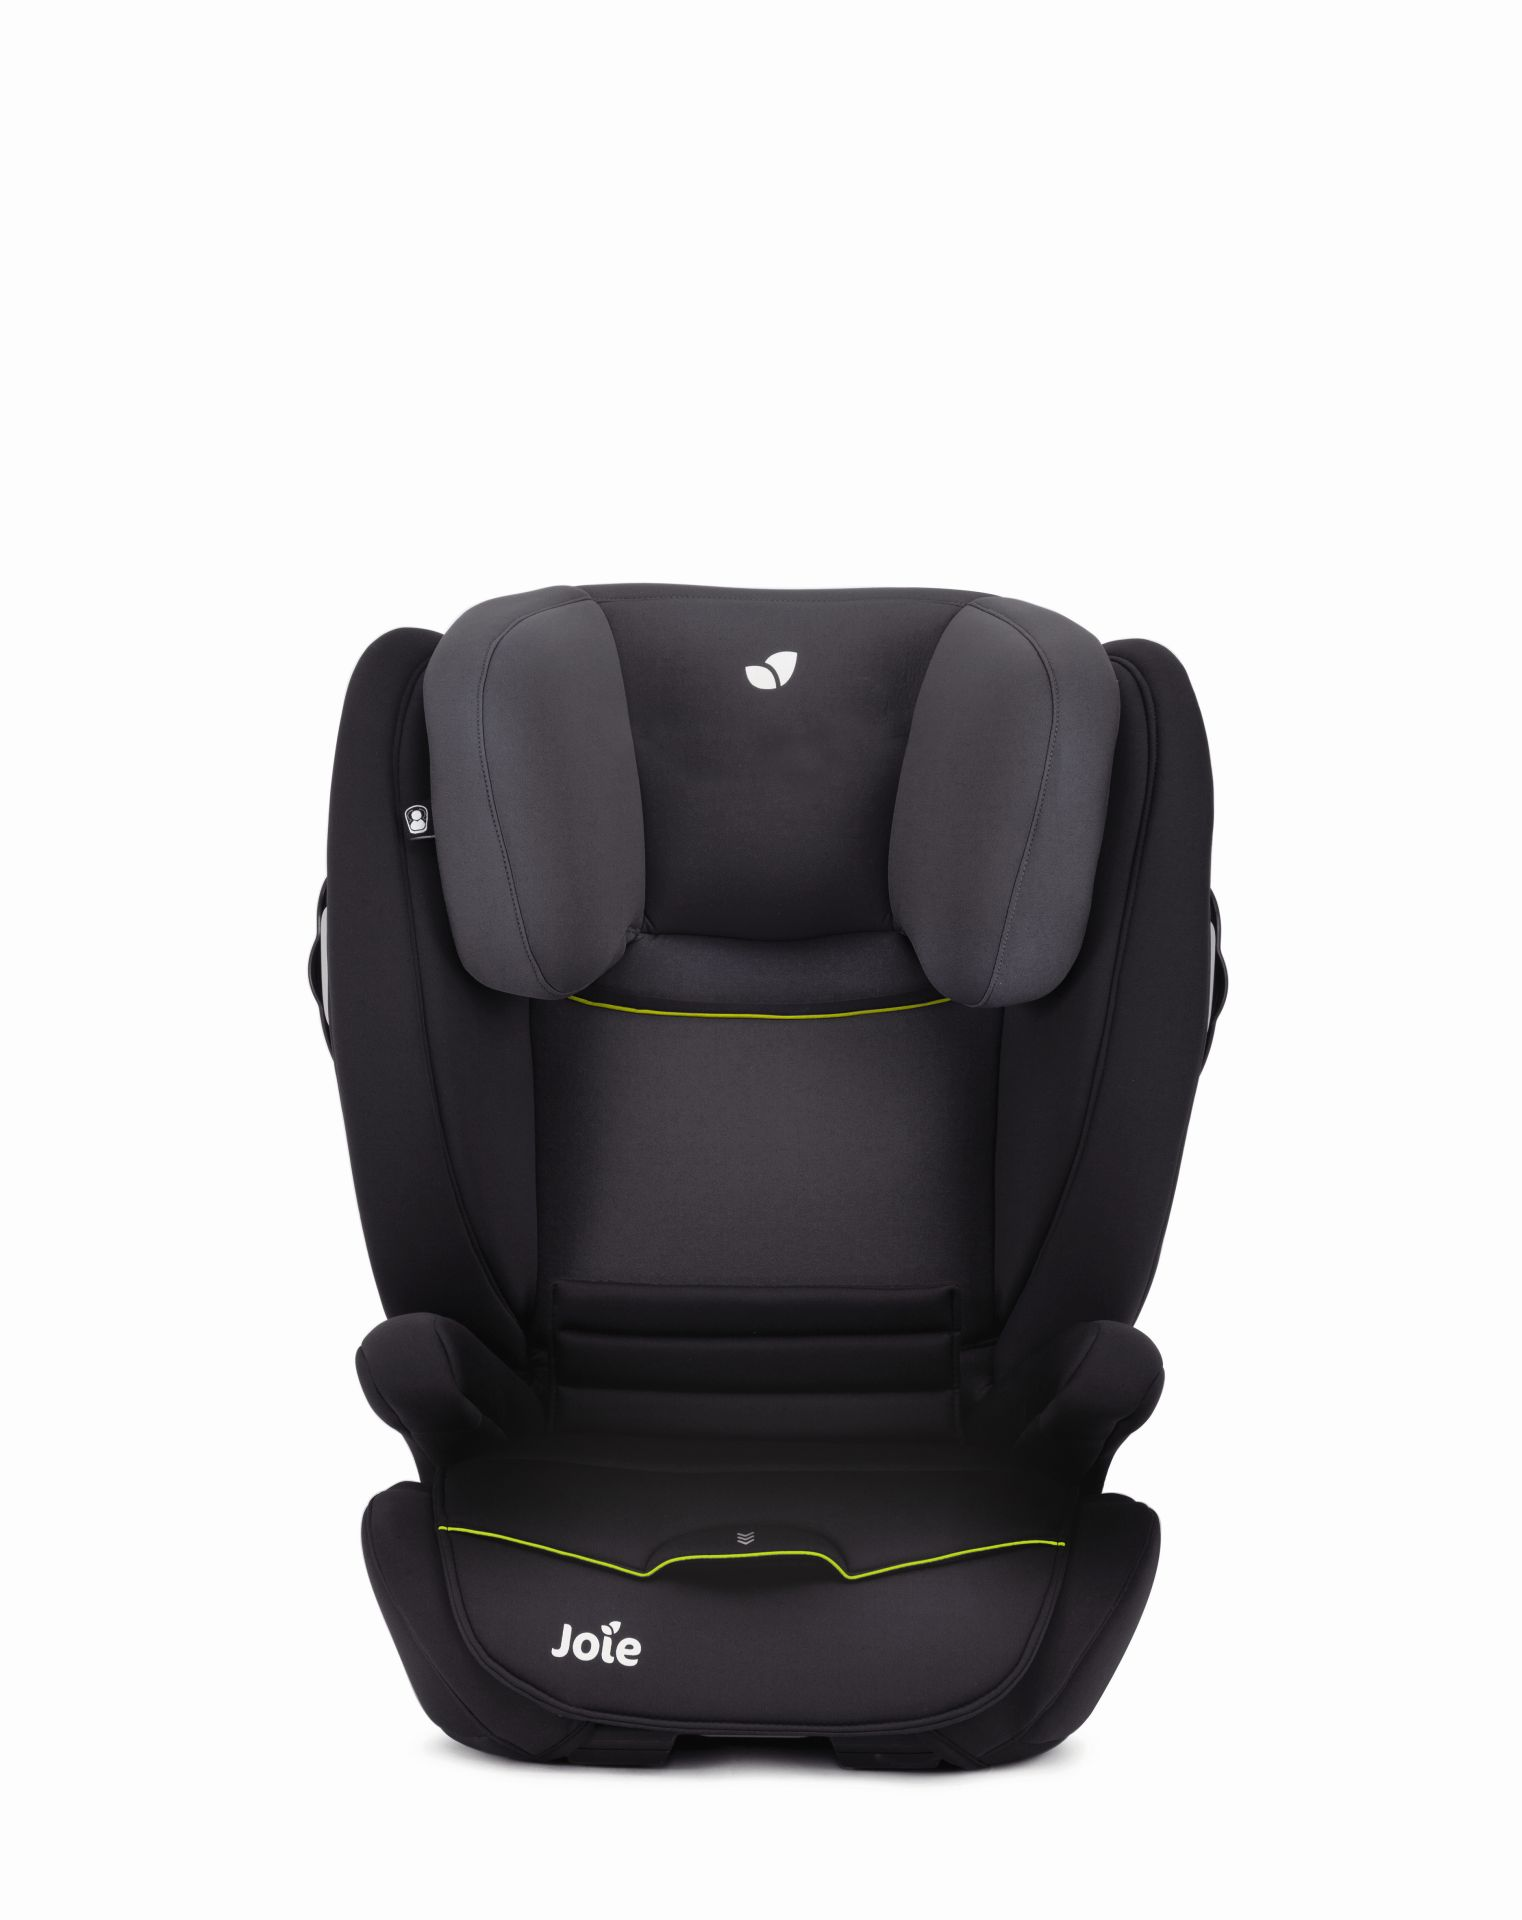 joie car seat duallo 2017 urban buy at kidsroom car seats. Black Bedroom Furniture Sets. Home Design Ideas